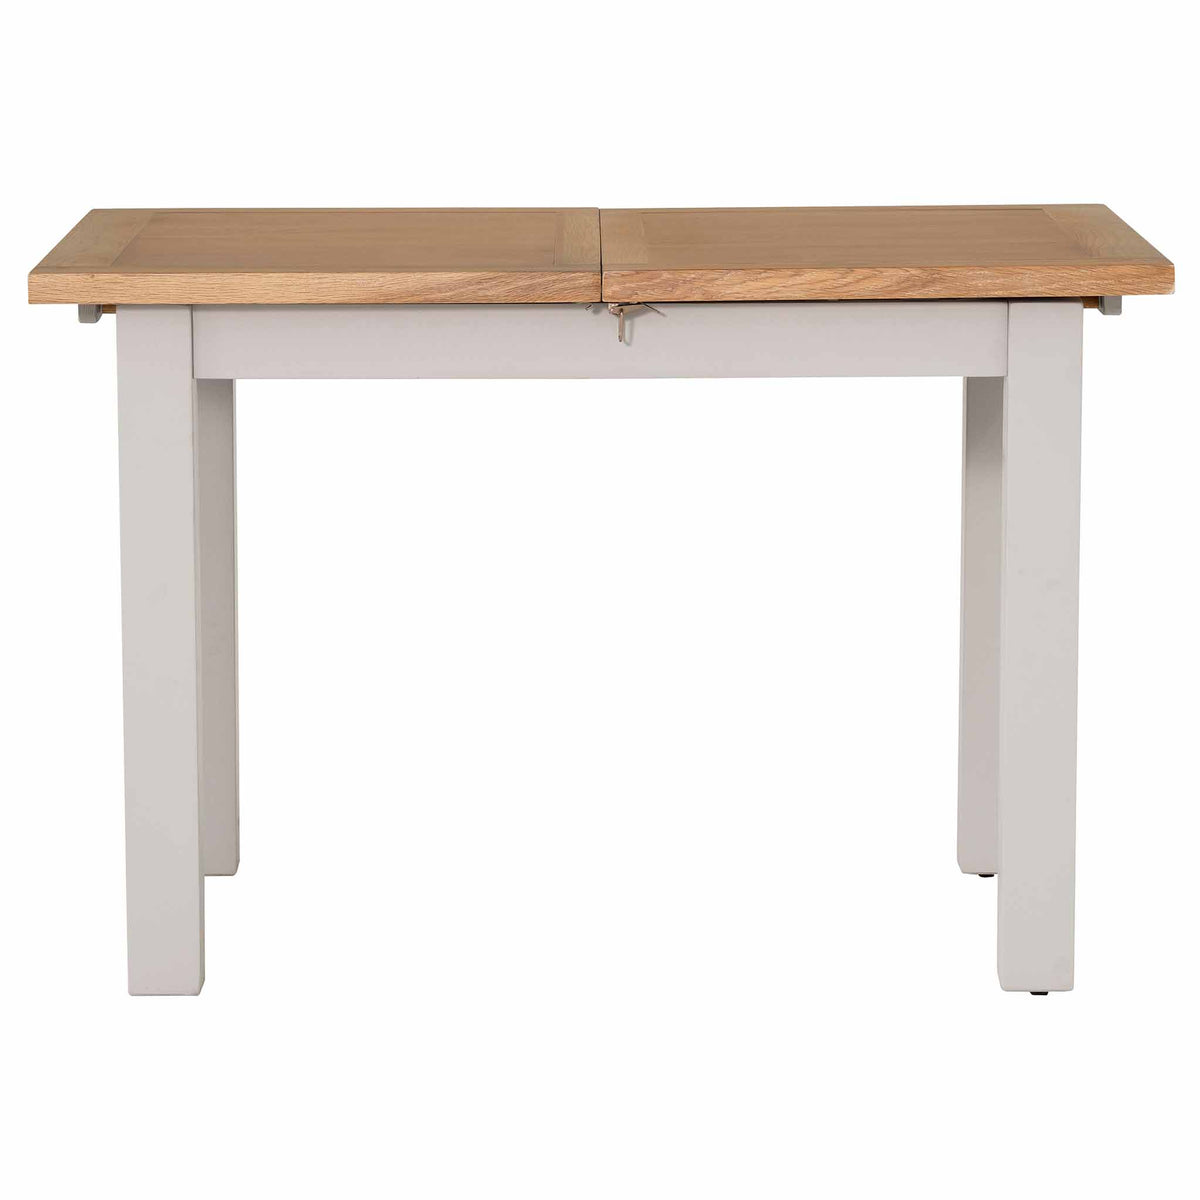 Side view of the compacted Charlestown Grey Extendable Dining Table from Roseland Furniture